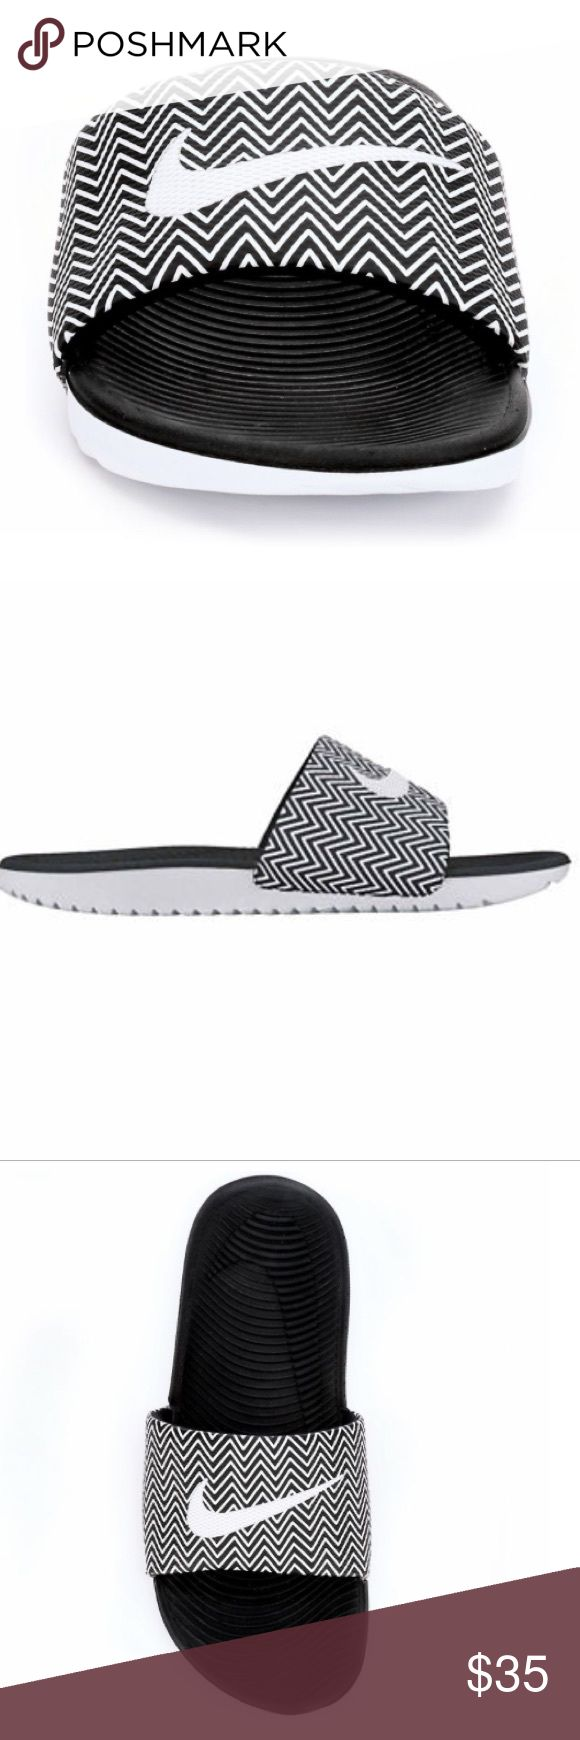 Nike Women's Kawa Print Slides Black and white Chevron Print Slides. Brand new. Very cute summer sandal.                  ❌NO TRADES.                                                       ✅OFFERS ACCEPTED.                                         FAST SHIPPING Nike Shoes Sandals